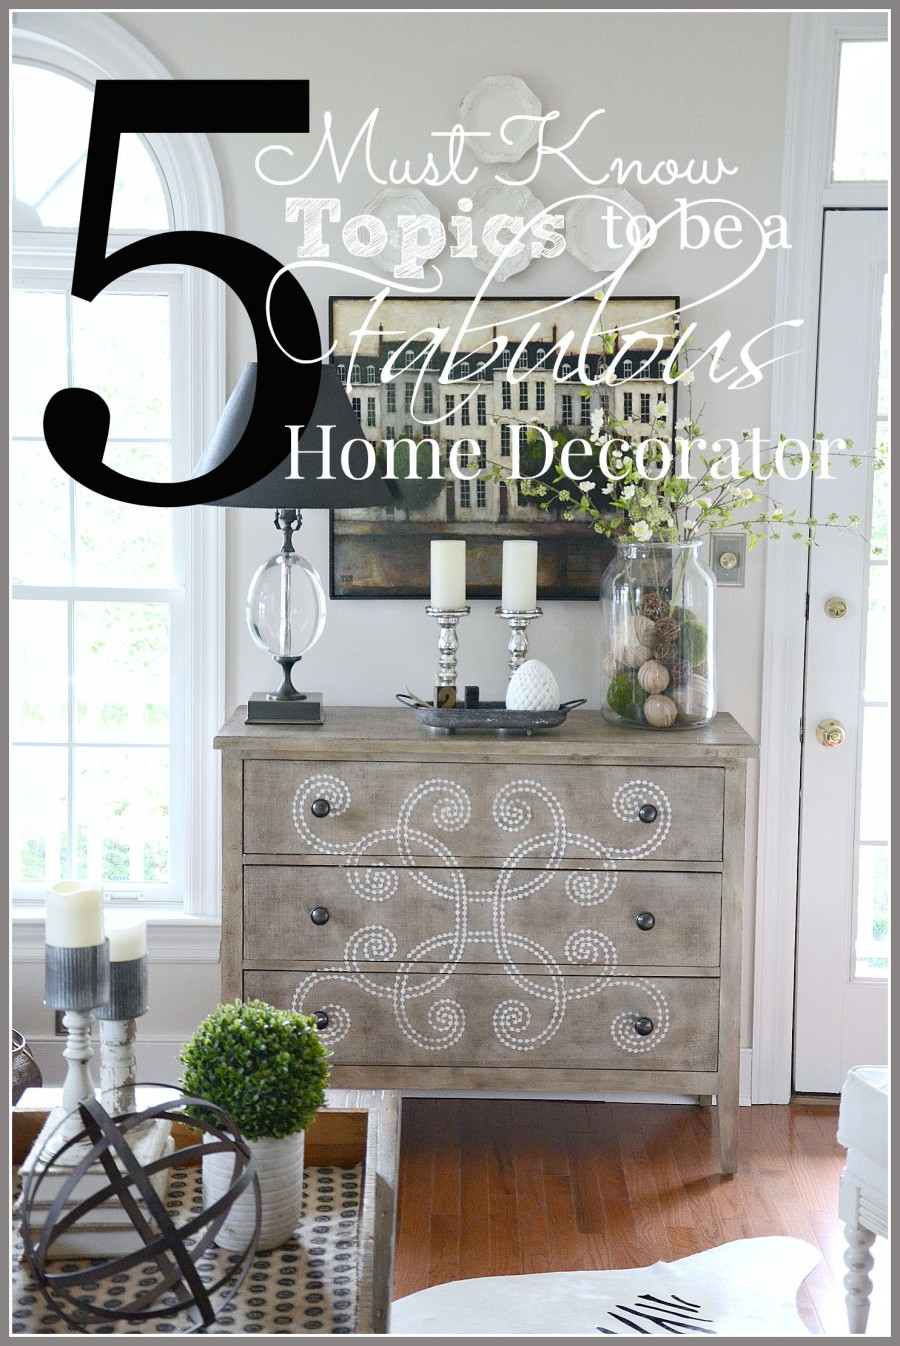 5 MUST KNOW TOPICS FOR BEING A FABULOUS HOME DECORATOR- this is a storehouse of helpful tips and lessons for the home decorator-stonegableblog.com